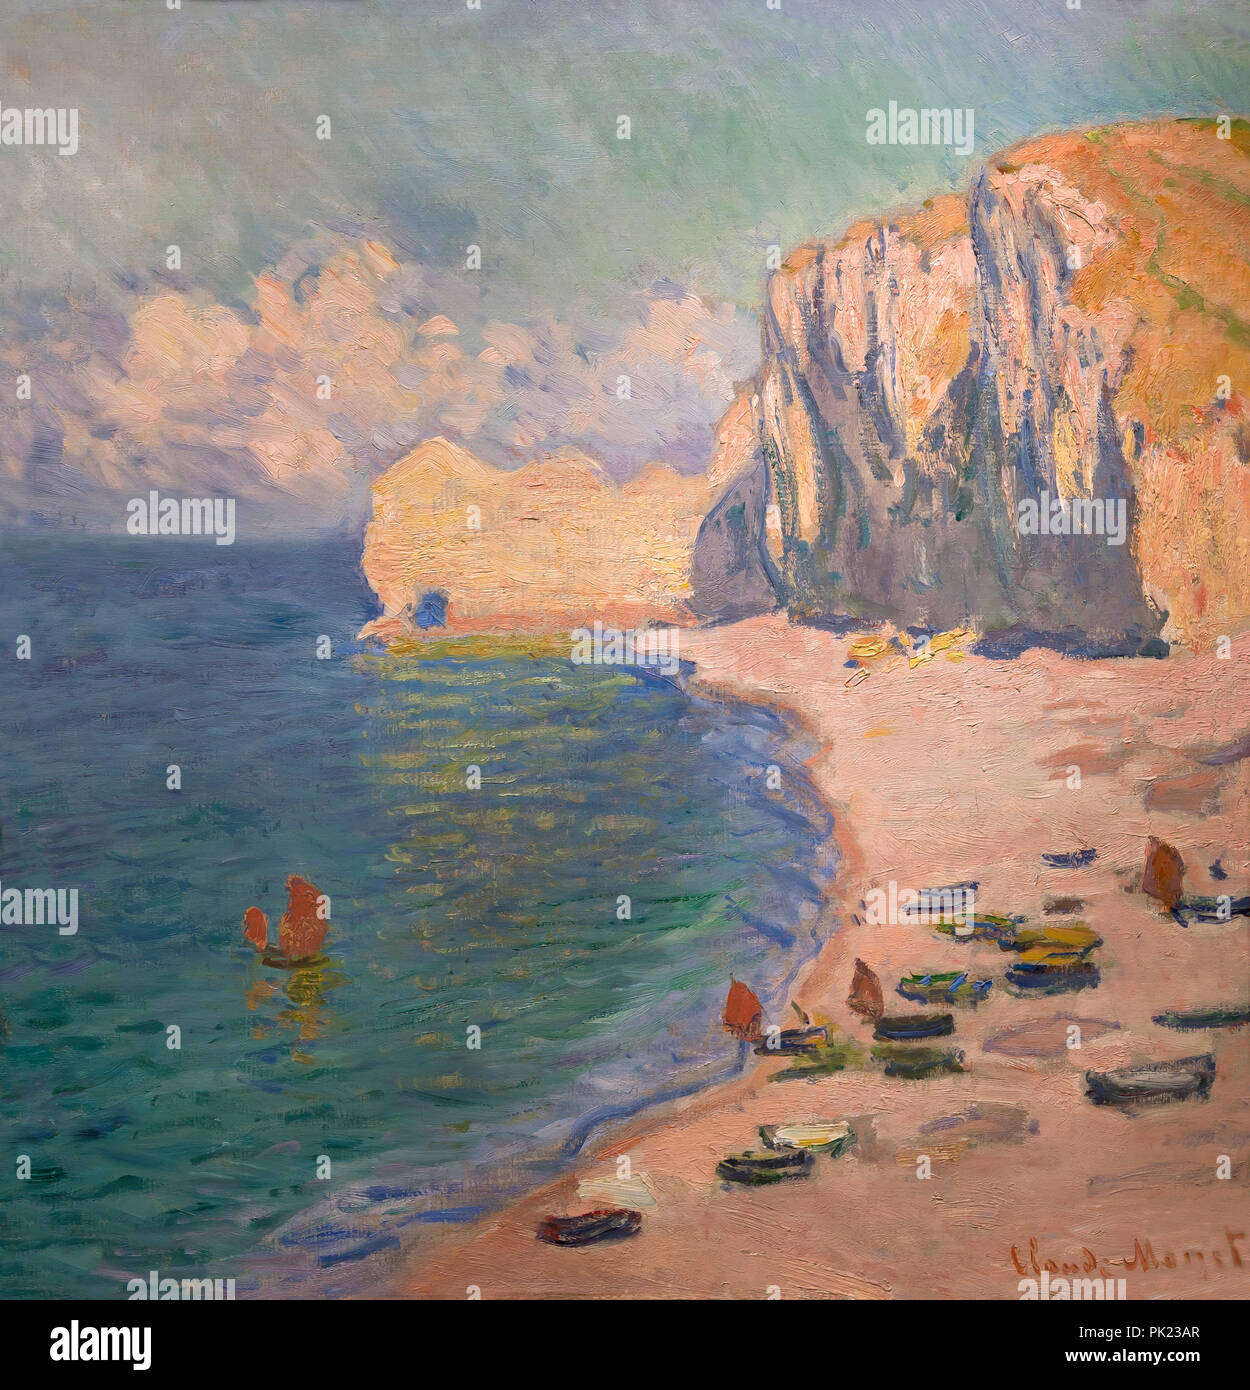 Etretat The Beach and the Falaise d'Amont, Claude Monet, 1885, Art Institute of Chicago, Chicago, Illinois, USA, North America, Stock Photo